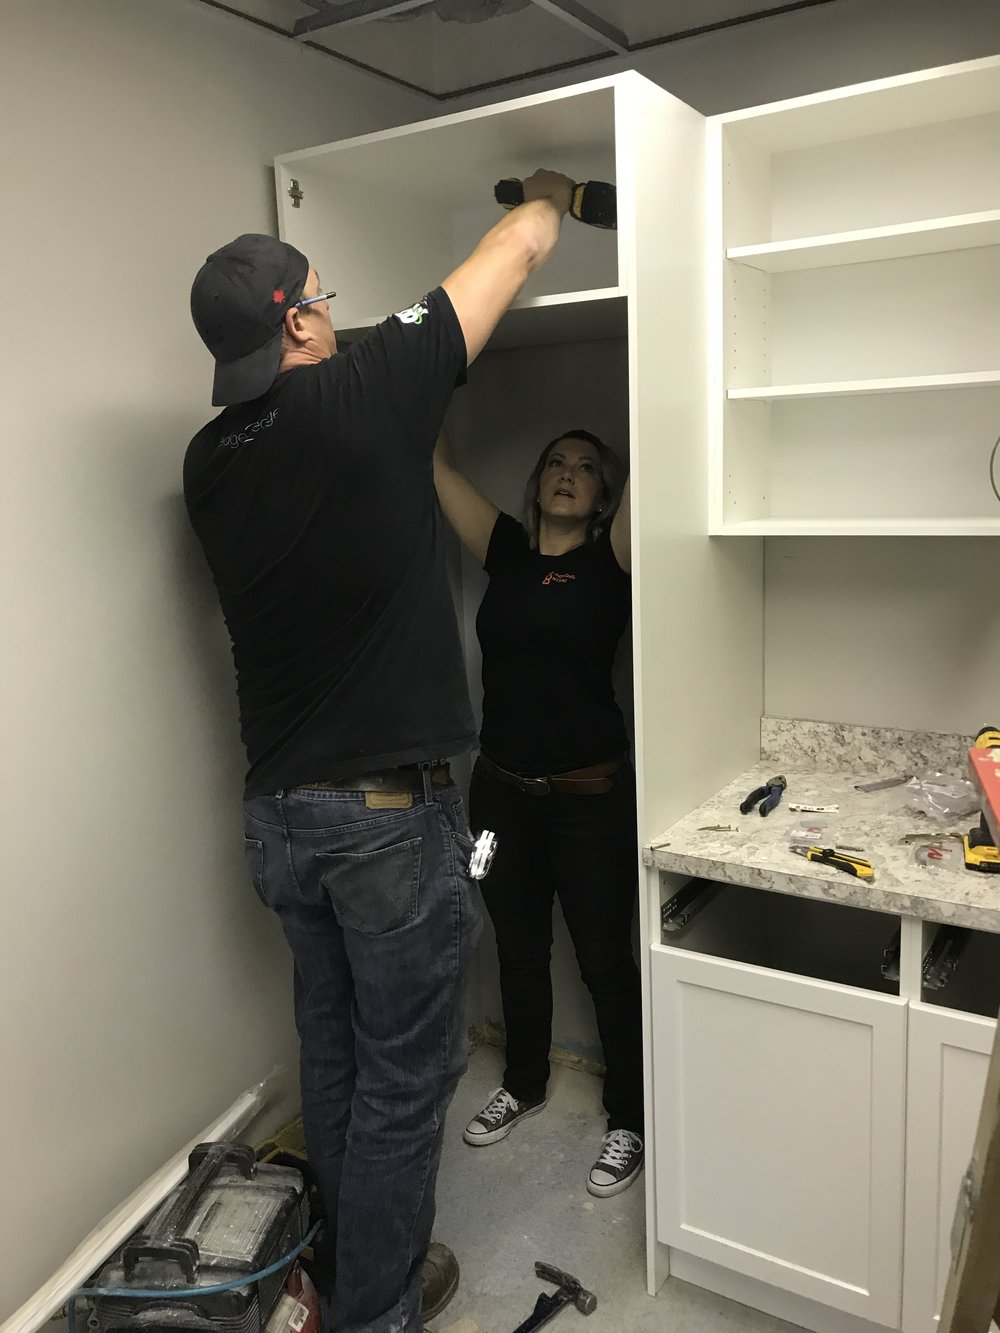 Teamwork To install Cabinets